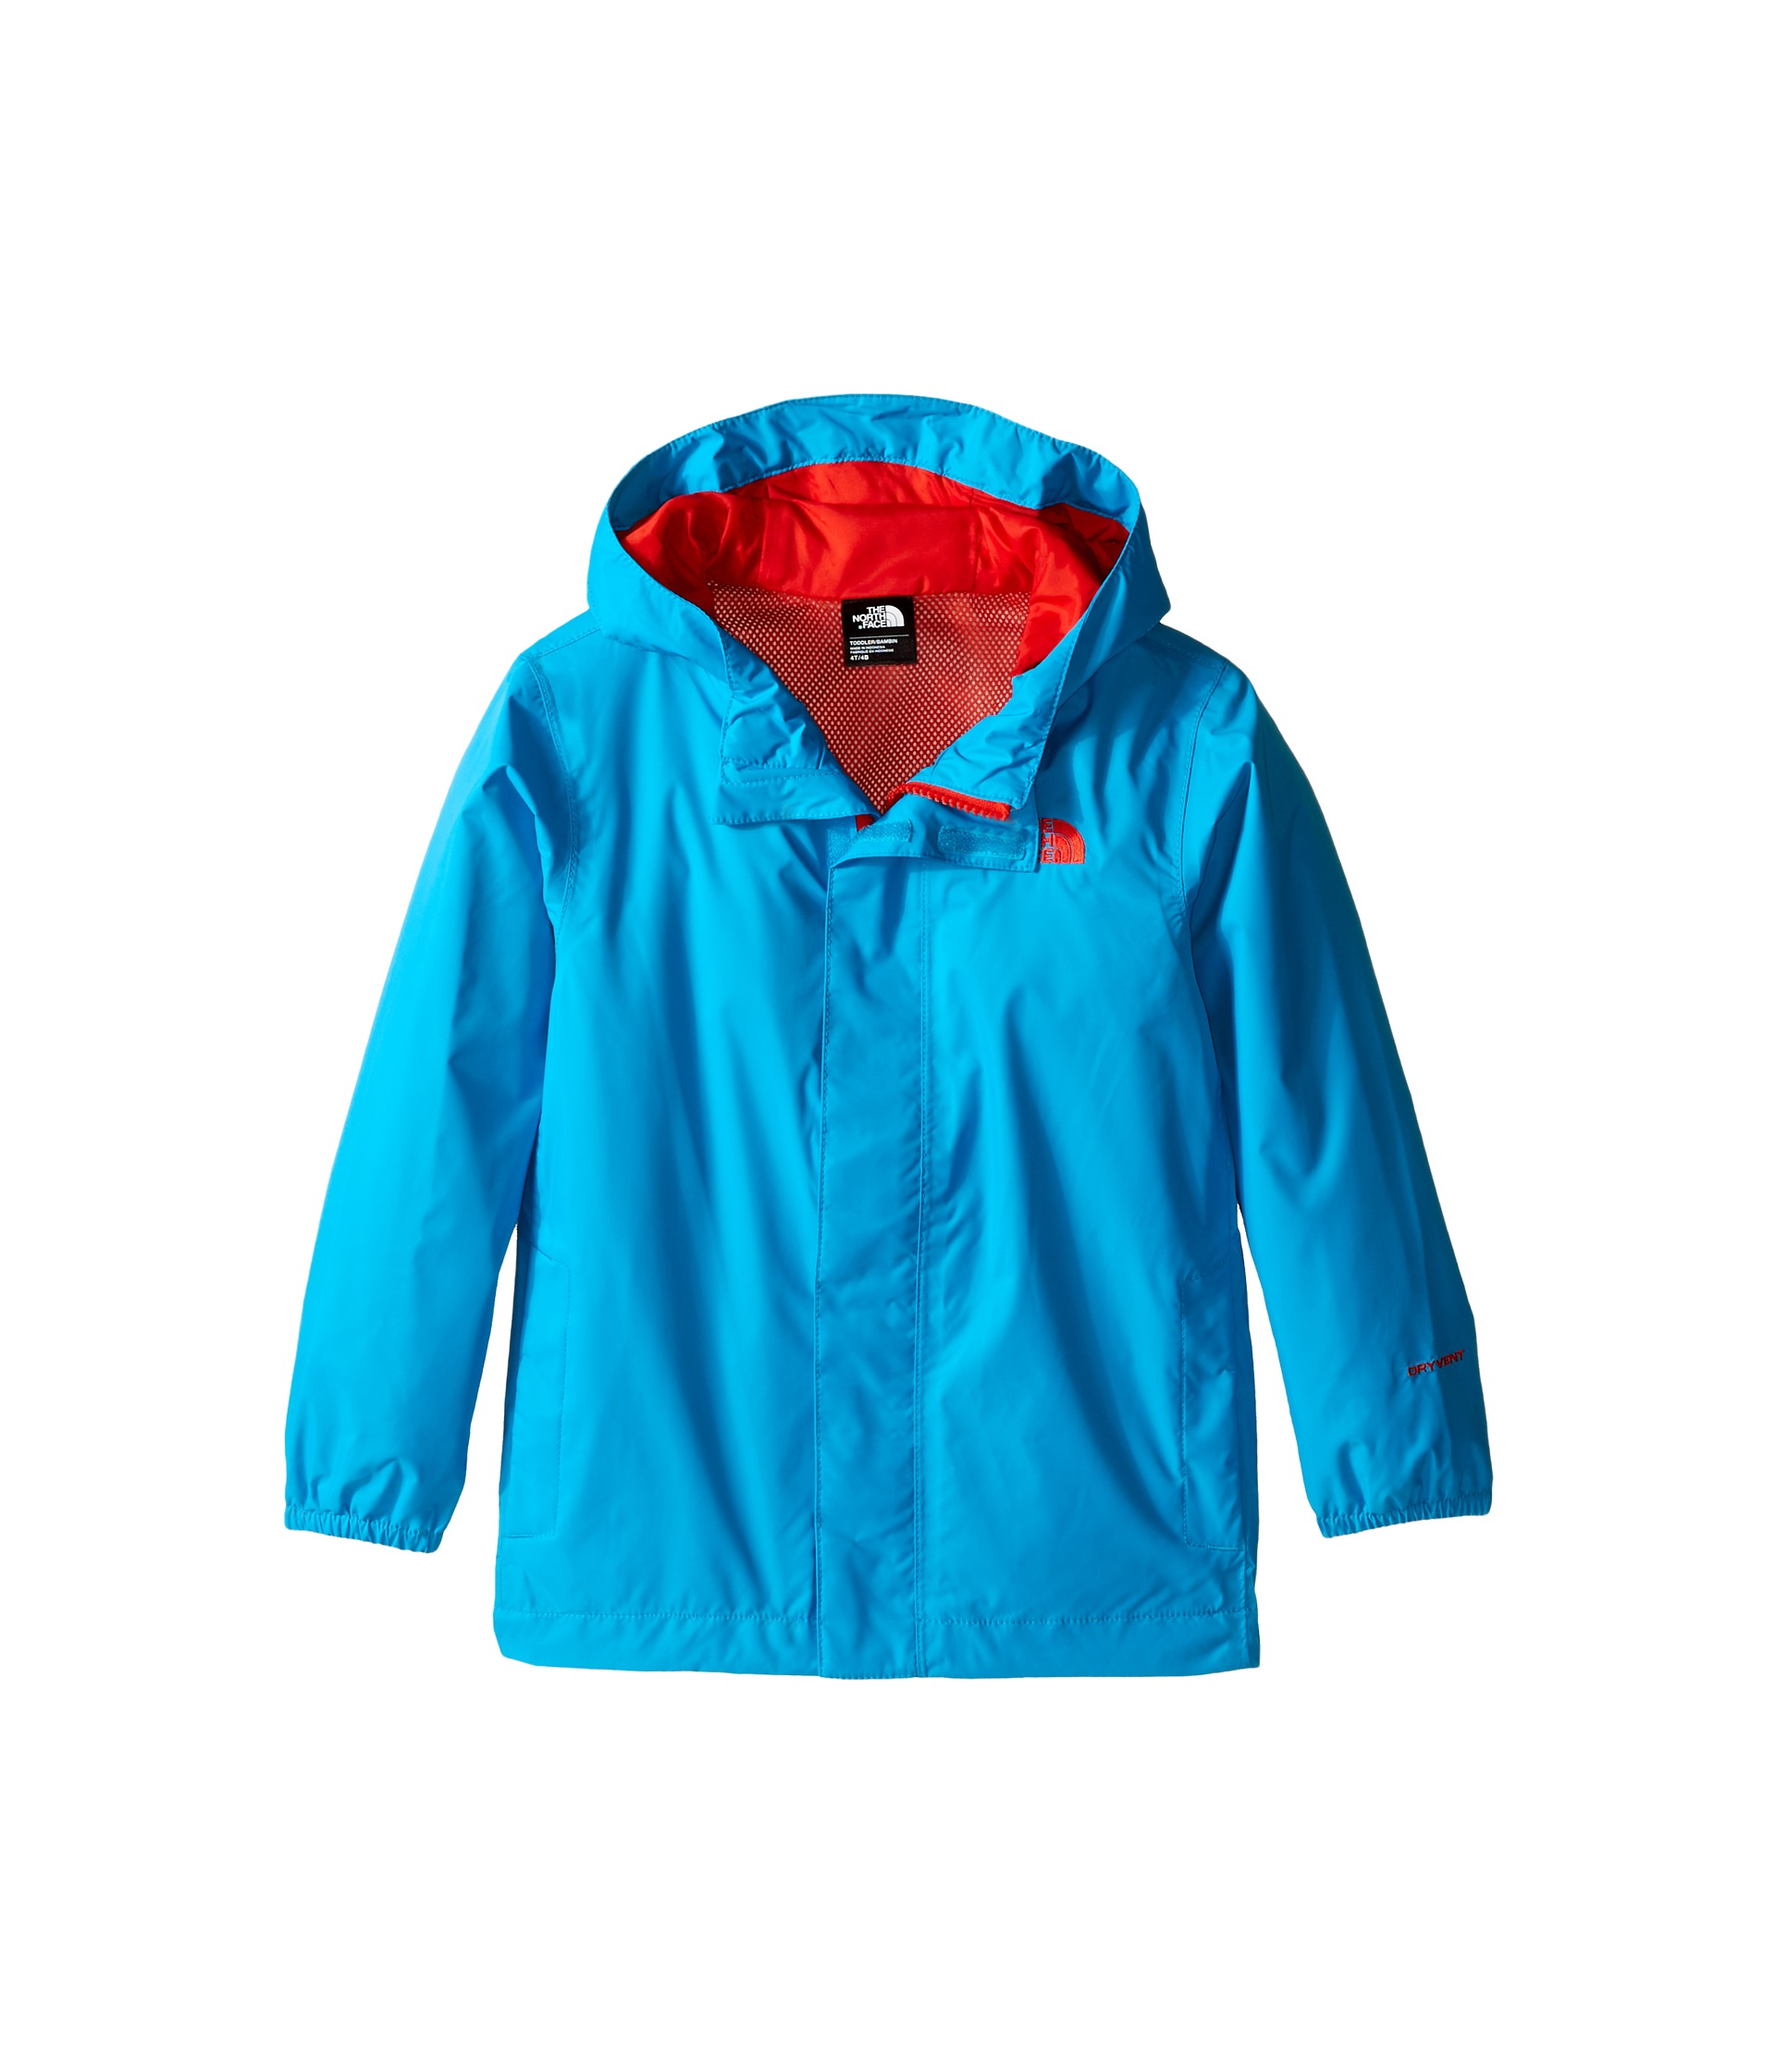 The North Face Kids Tailout Rain Jacket (Toddler) - 6pm.com